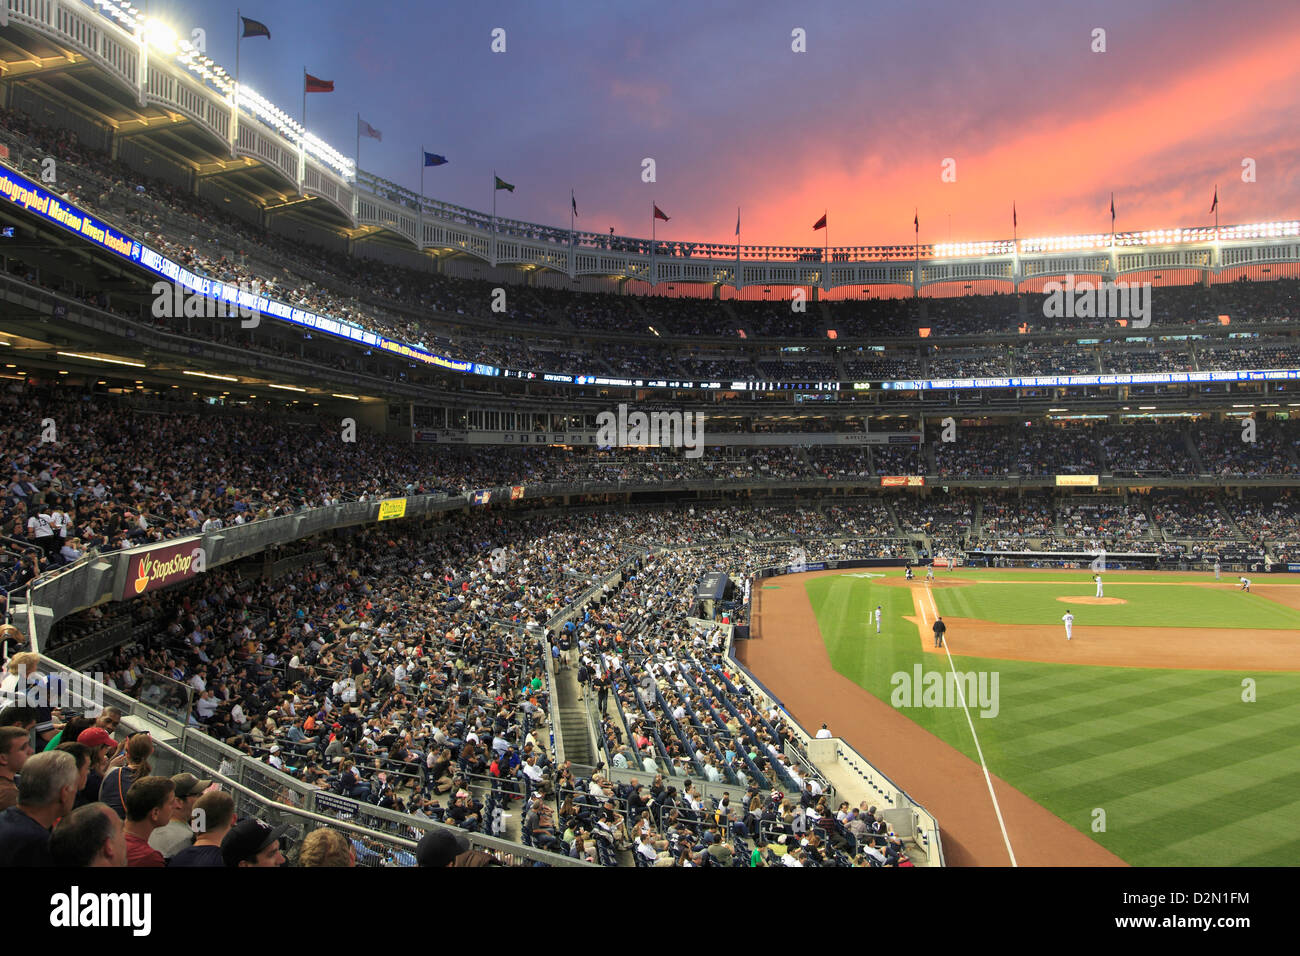 Jeu de base-ball, Yankee Stadium, Bronx, New York City, États-Unis d'Amérique, Amérique du Nord Photo Stock